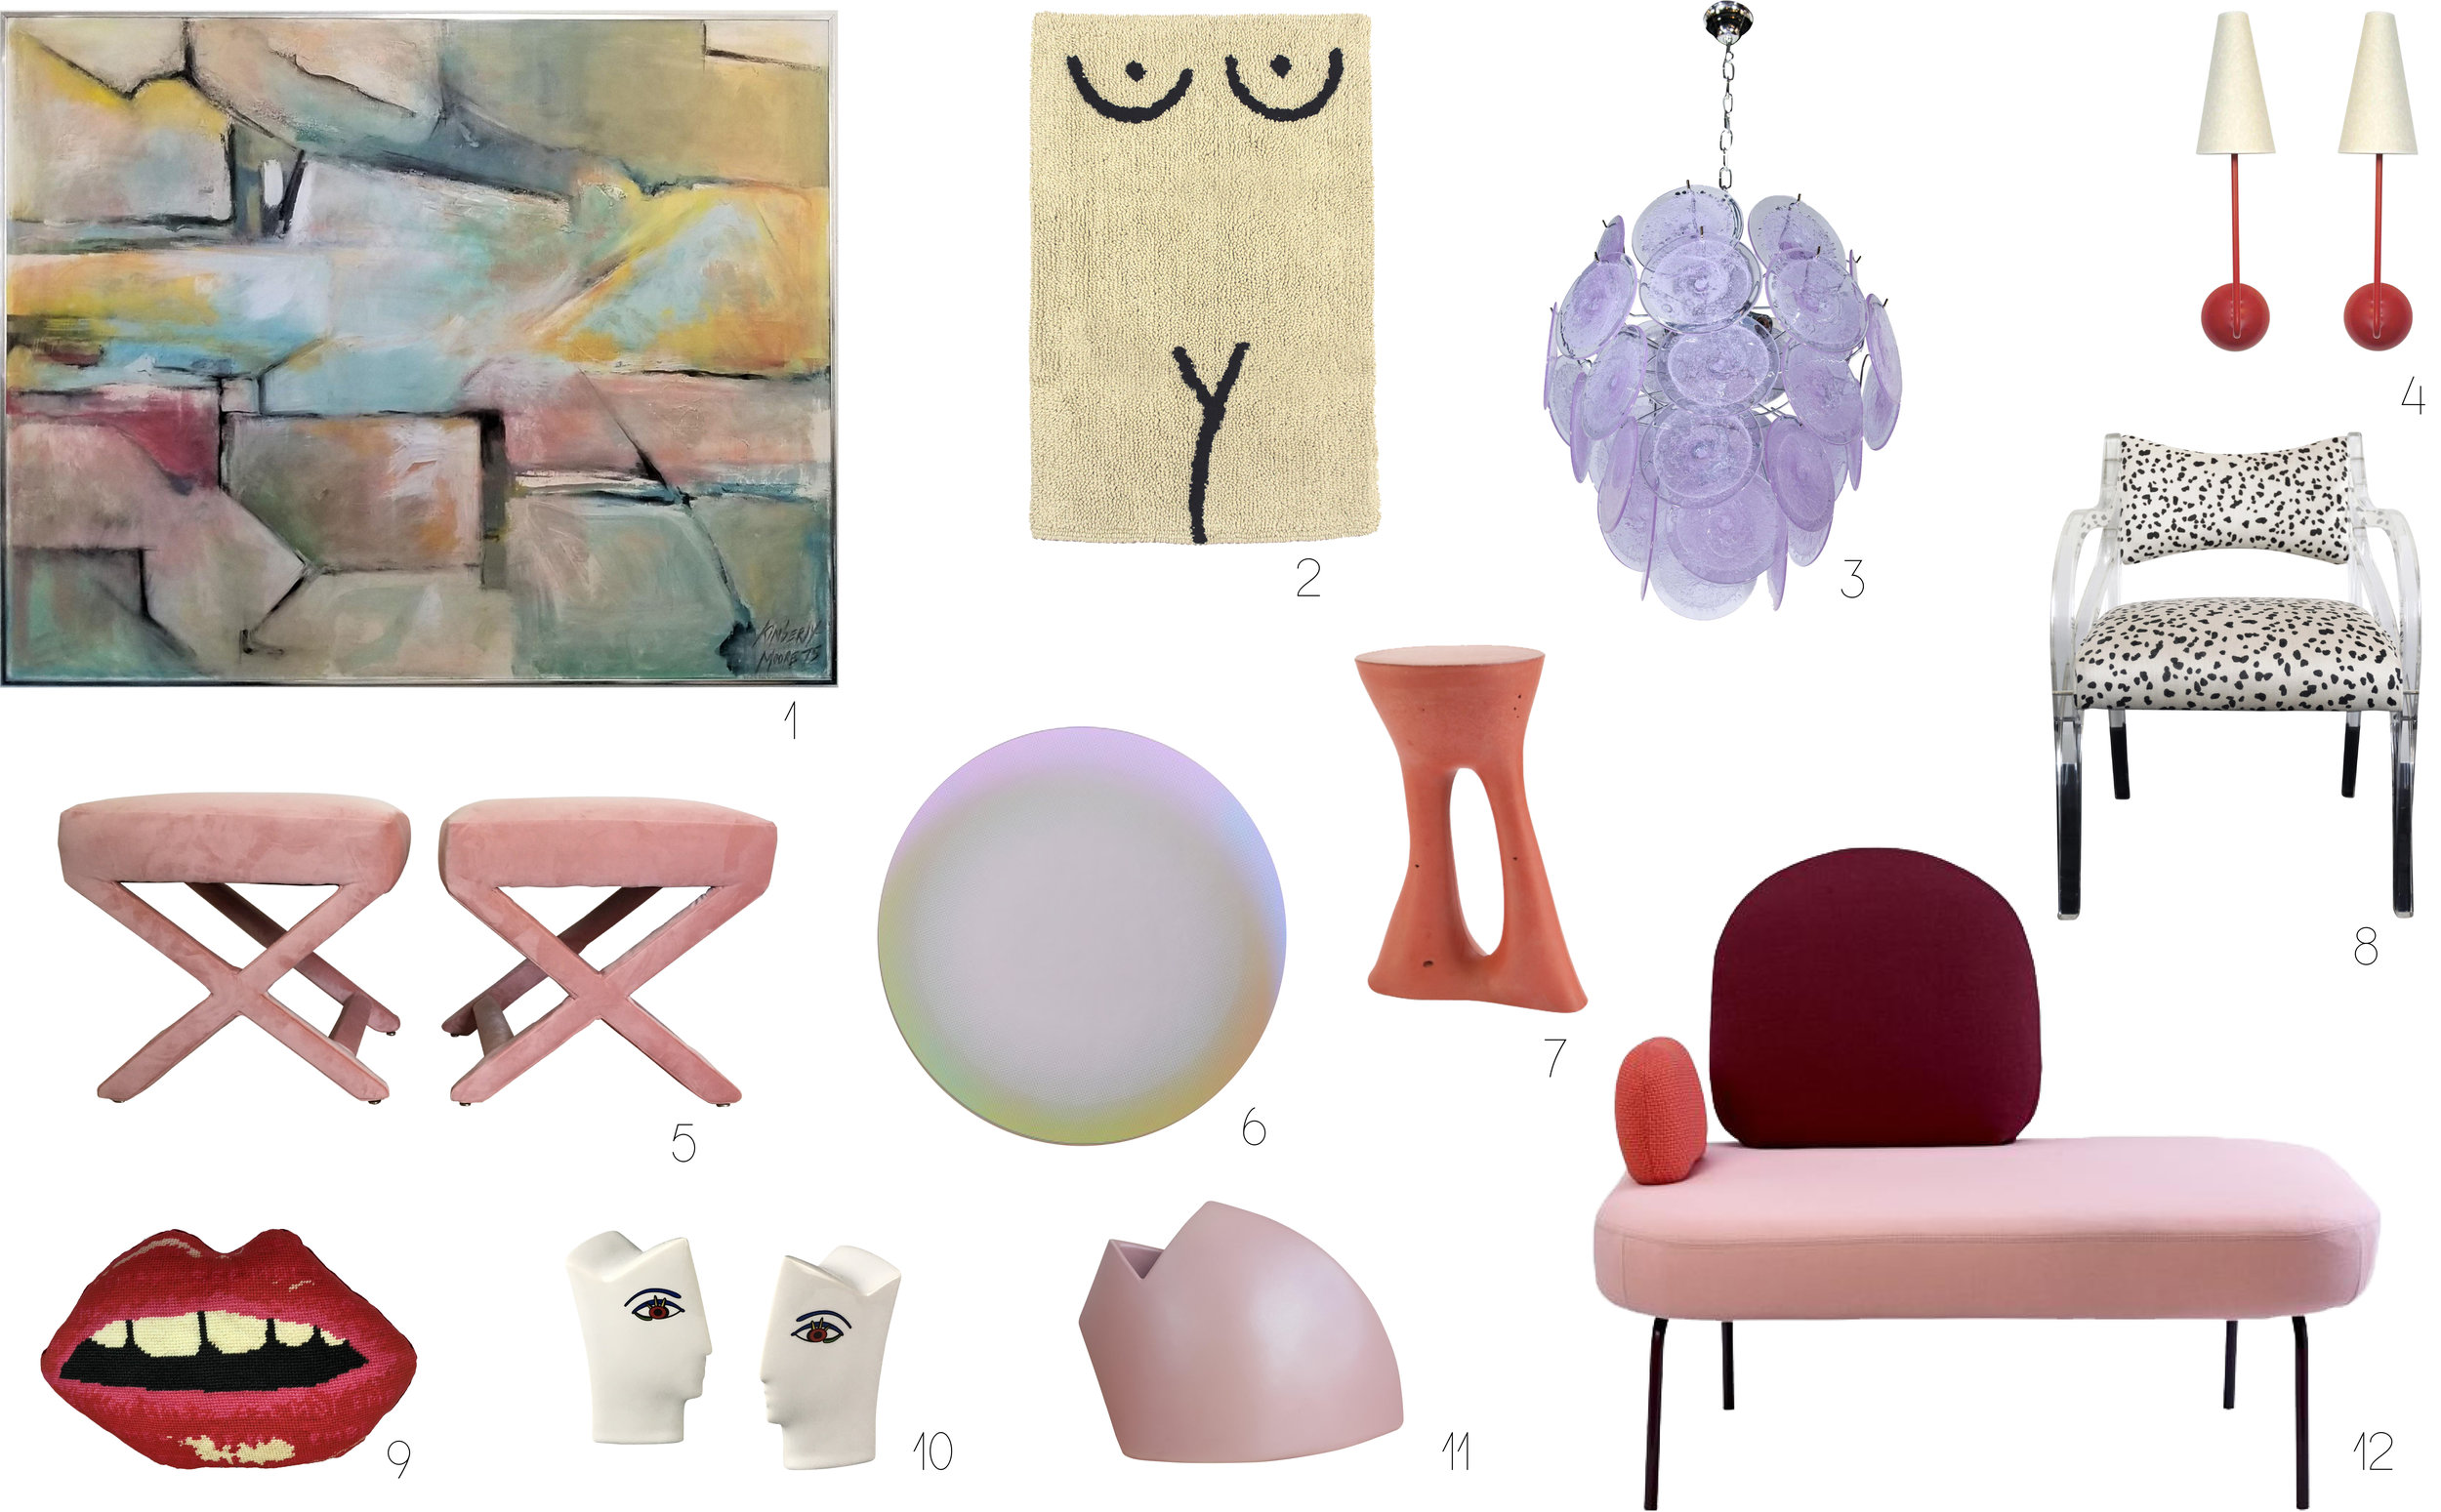 1.  ABSTRACT OIL PAINTING FROM CHAIRISH  / 2.  BATH MAT FROM COLD PICNIC / 3.  MURANO CHANDELIER FROM 1ST DIBS  / 4 . Pair of sconces from chairish  / 5. P air of x-benches from chairish  / 6.  shimmer mirror from abc home  / 7.  side table from souda  / 8.  vintage spotted lucite chair from chairish  / 9.  lips pillow from mommani threads  / 10.  vintage salt & pepper shakers from chairish  / 11.  vintage vase from chairish  / 12.  between sofa from bolia